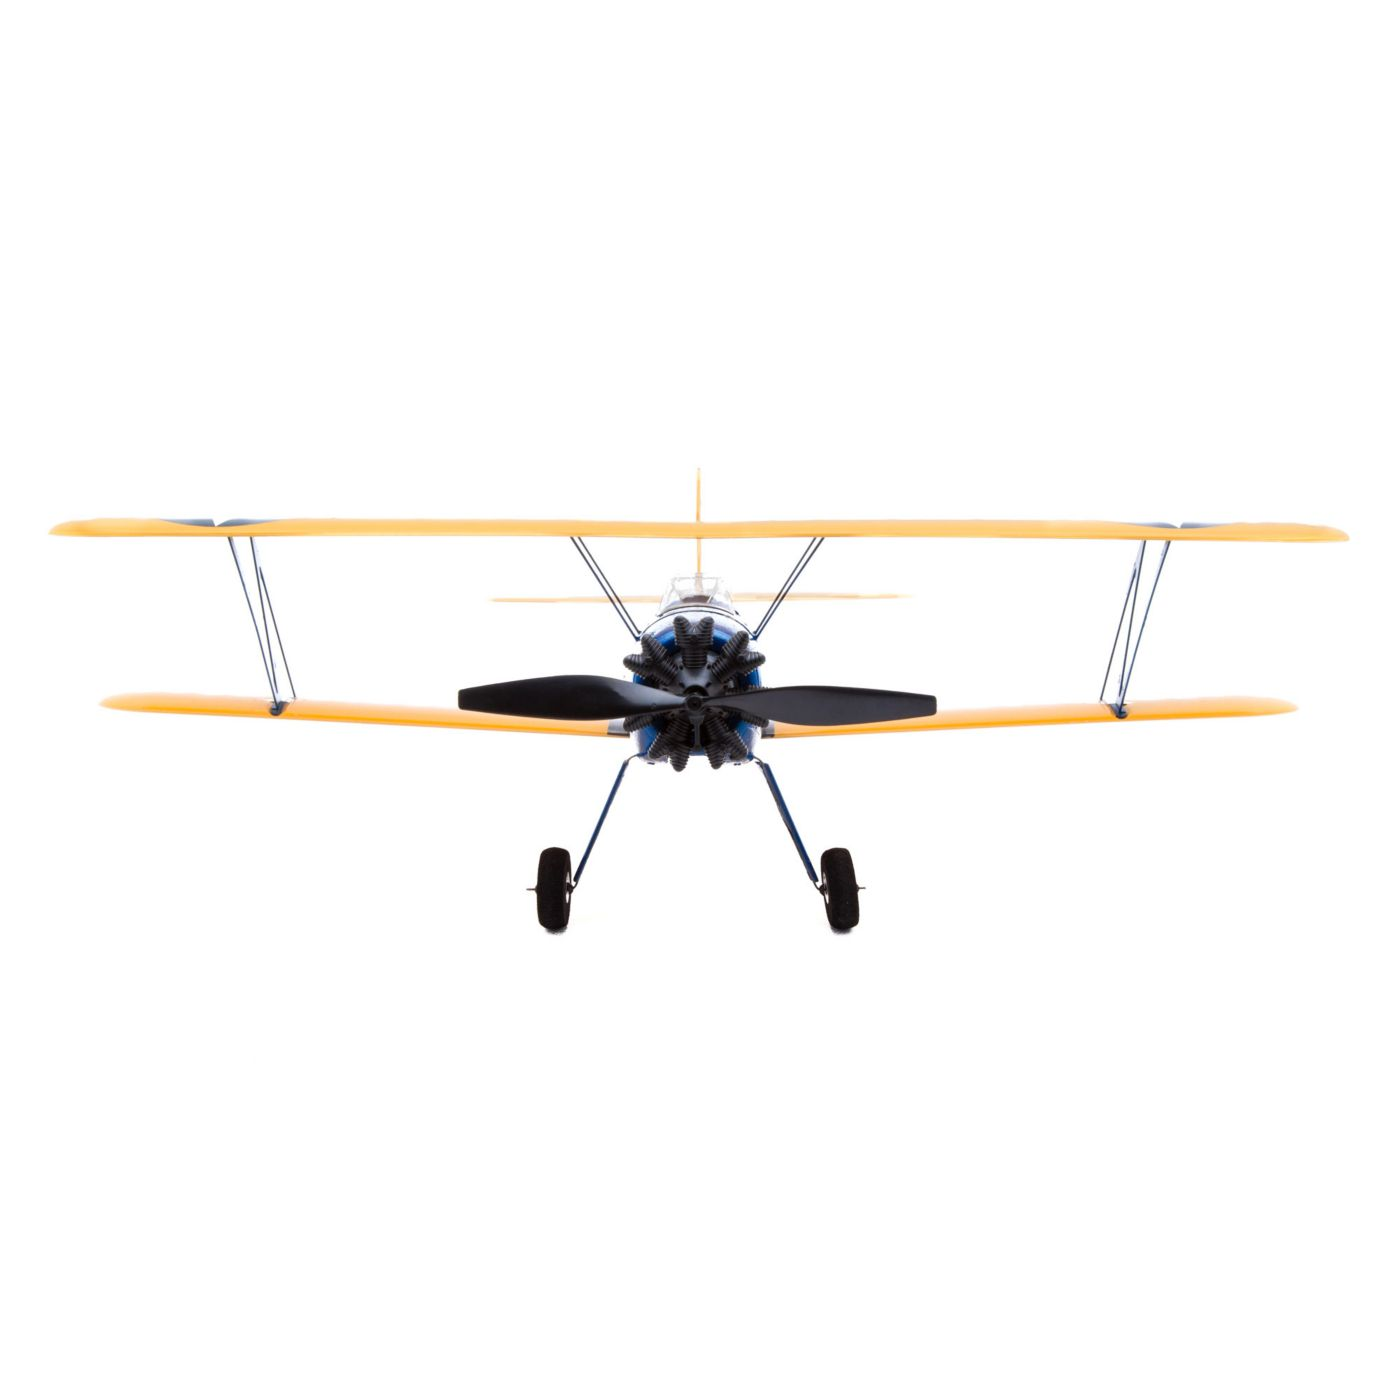 E Flite Umx Pt 17 Bnf With As3x